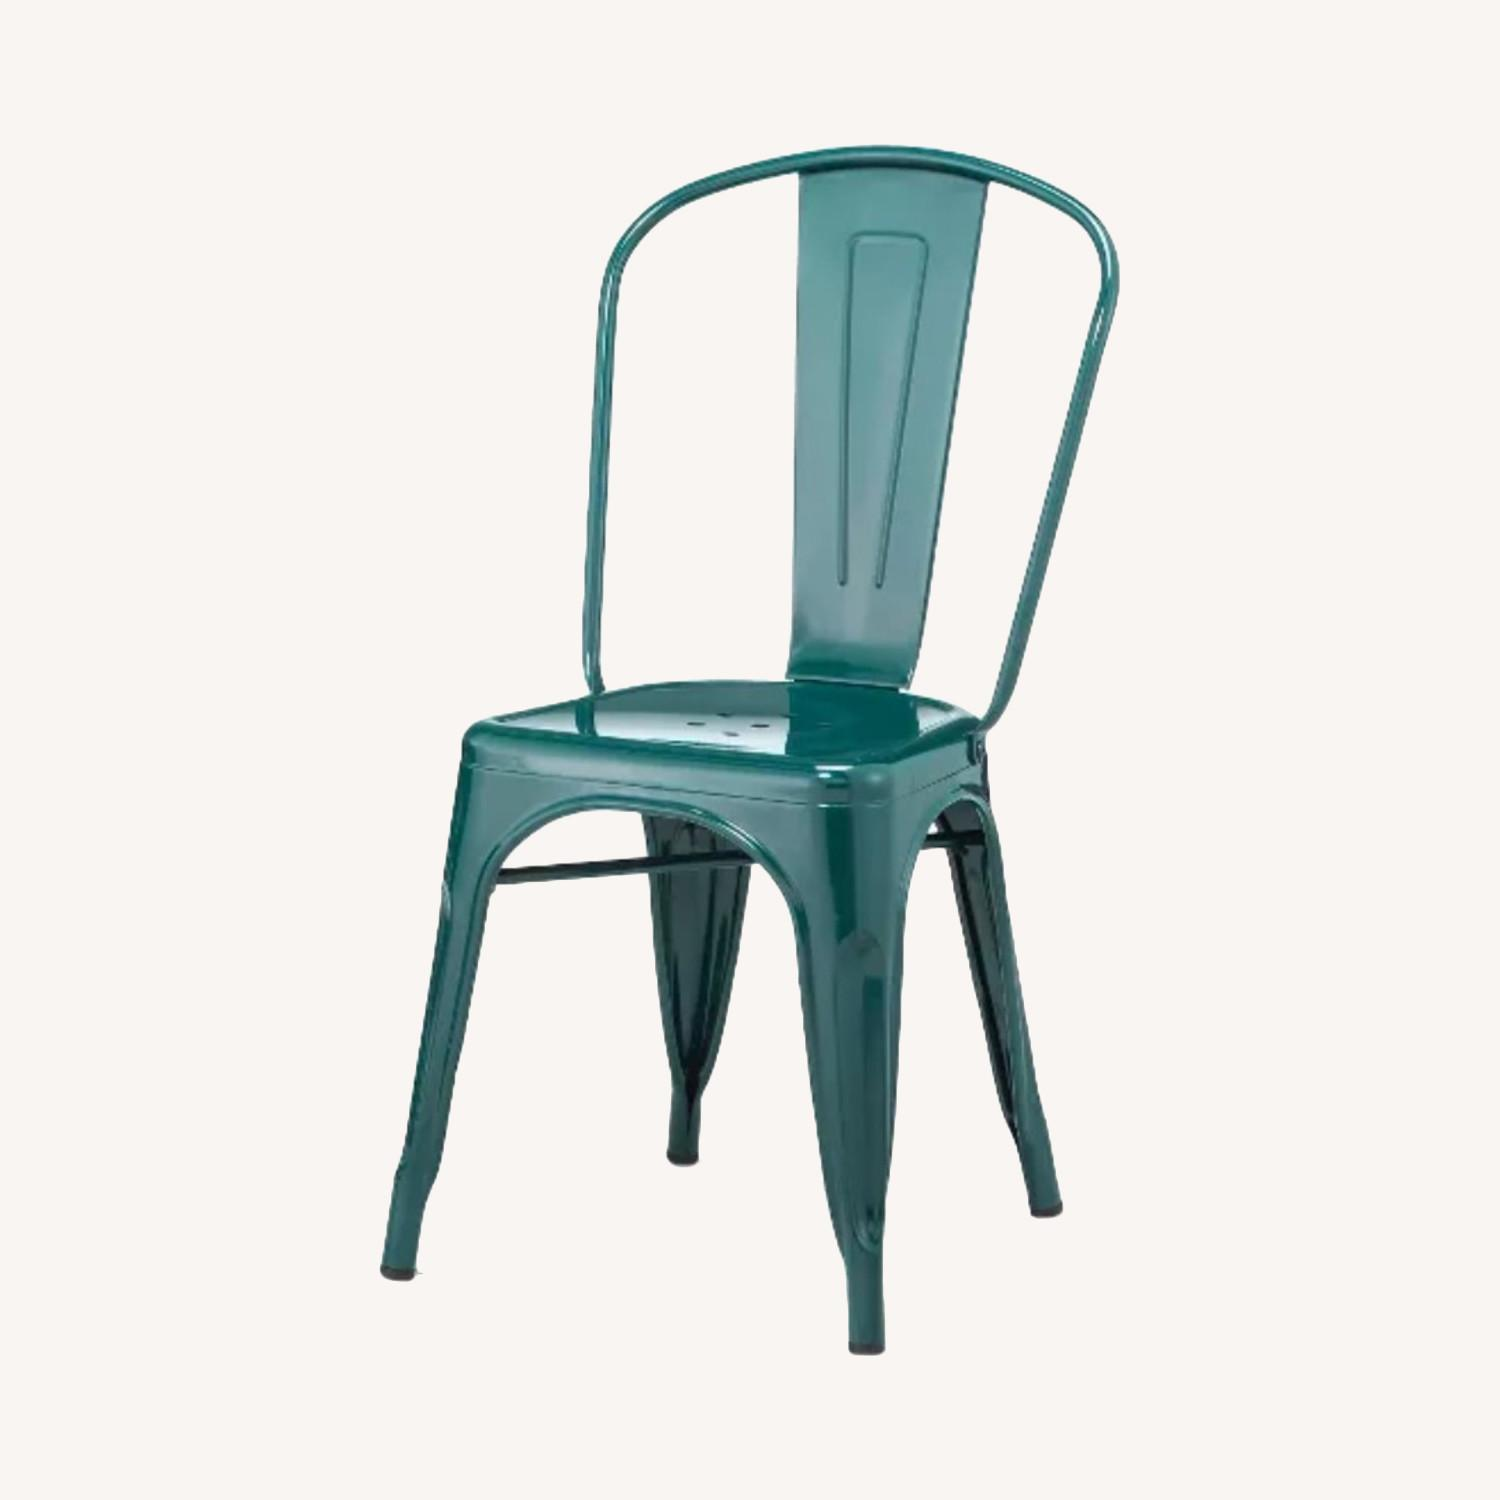 Teal Blue Metal Dining Chairs